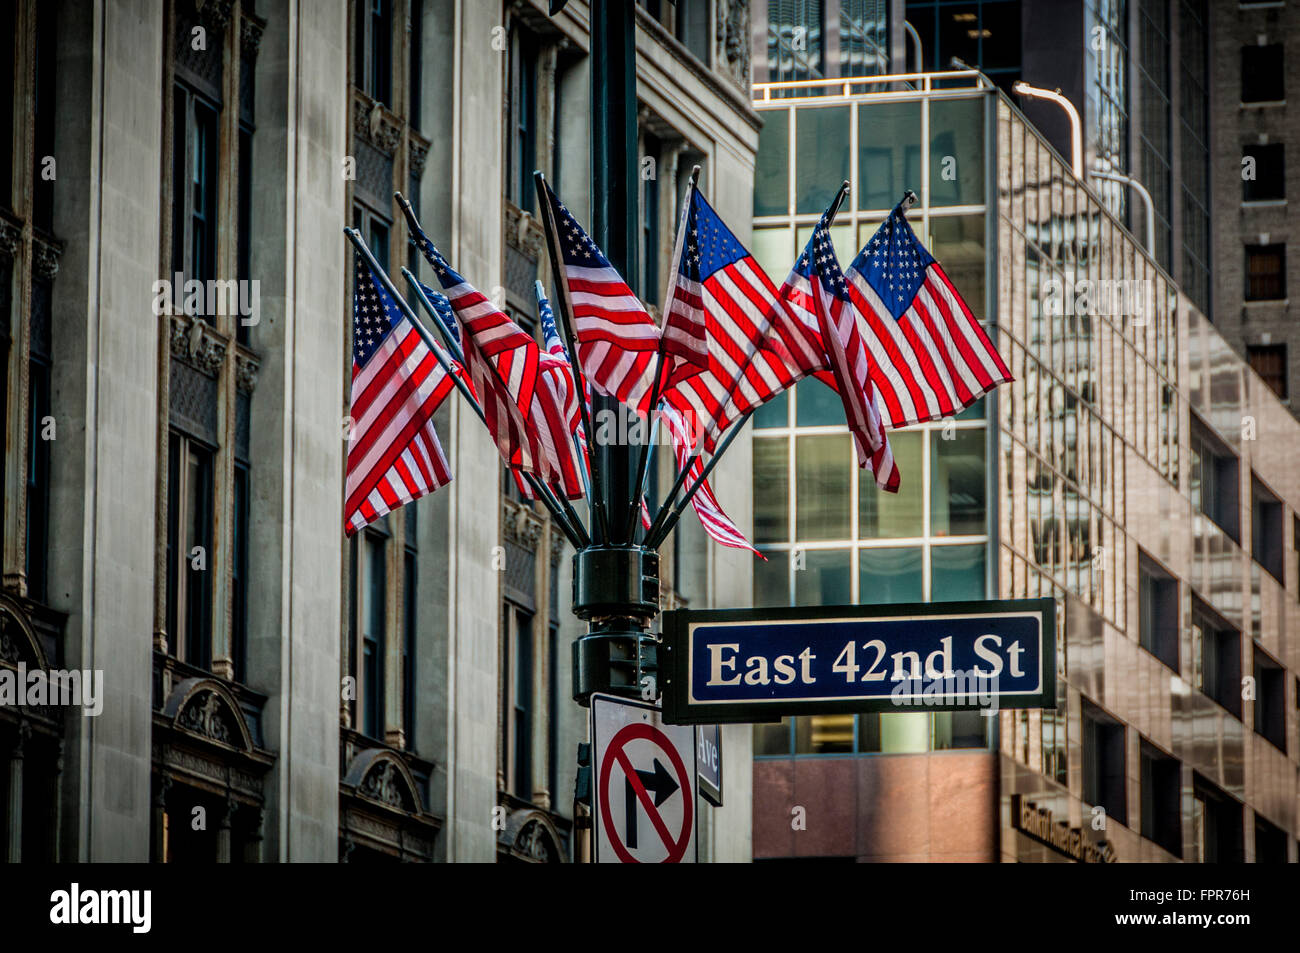 East 42nd St sign and group of American flags on lampost, New York City, USA. - Stock Image